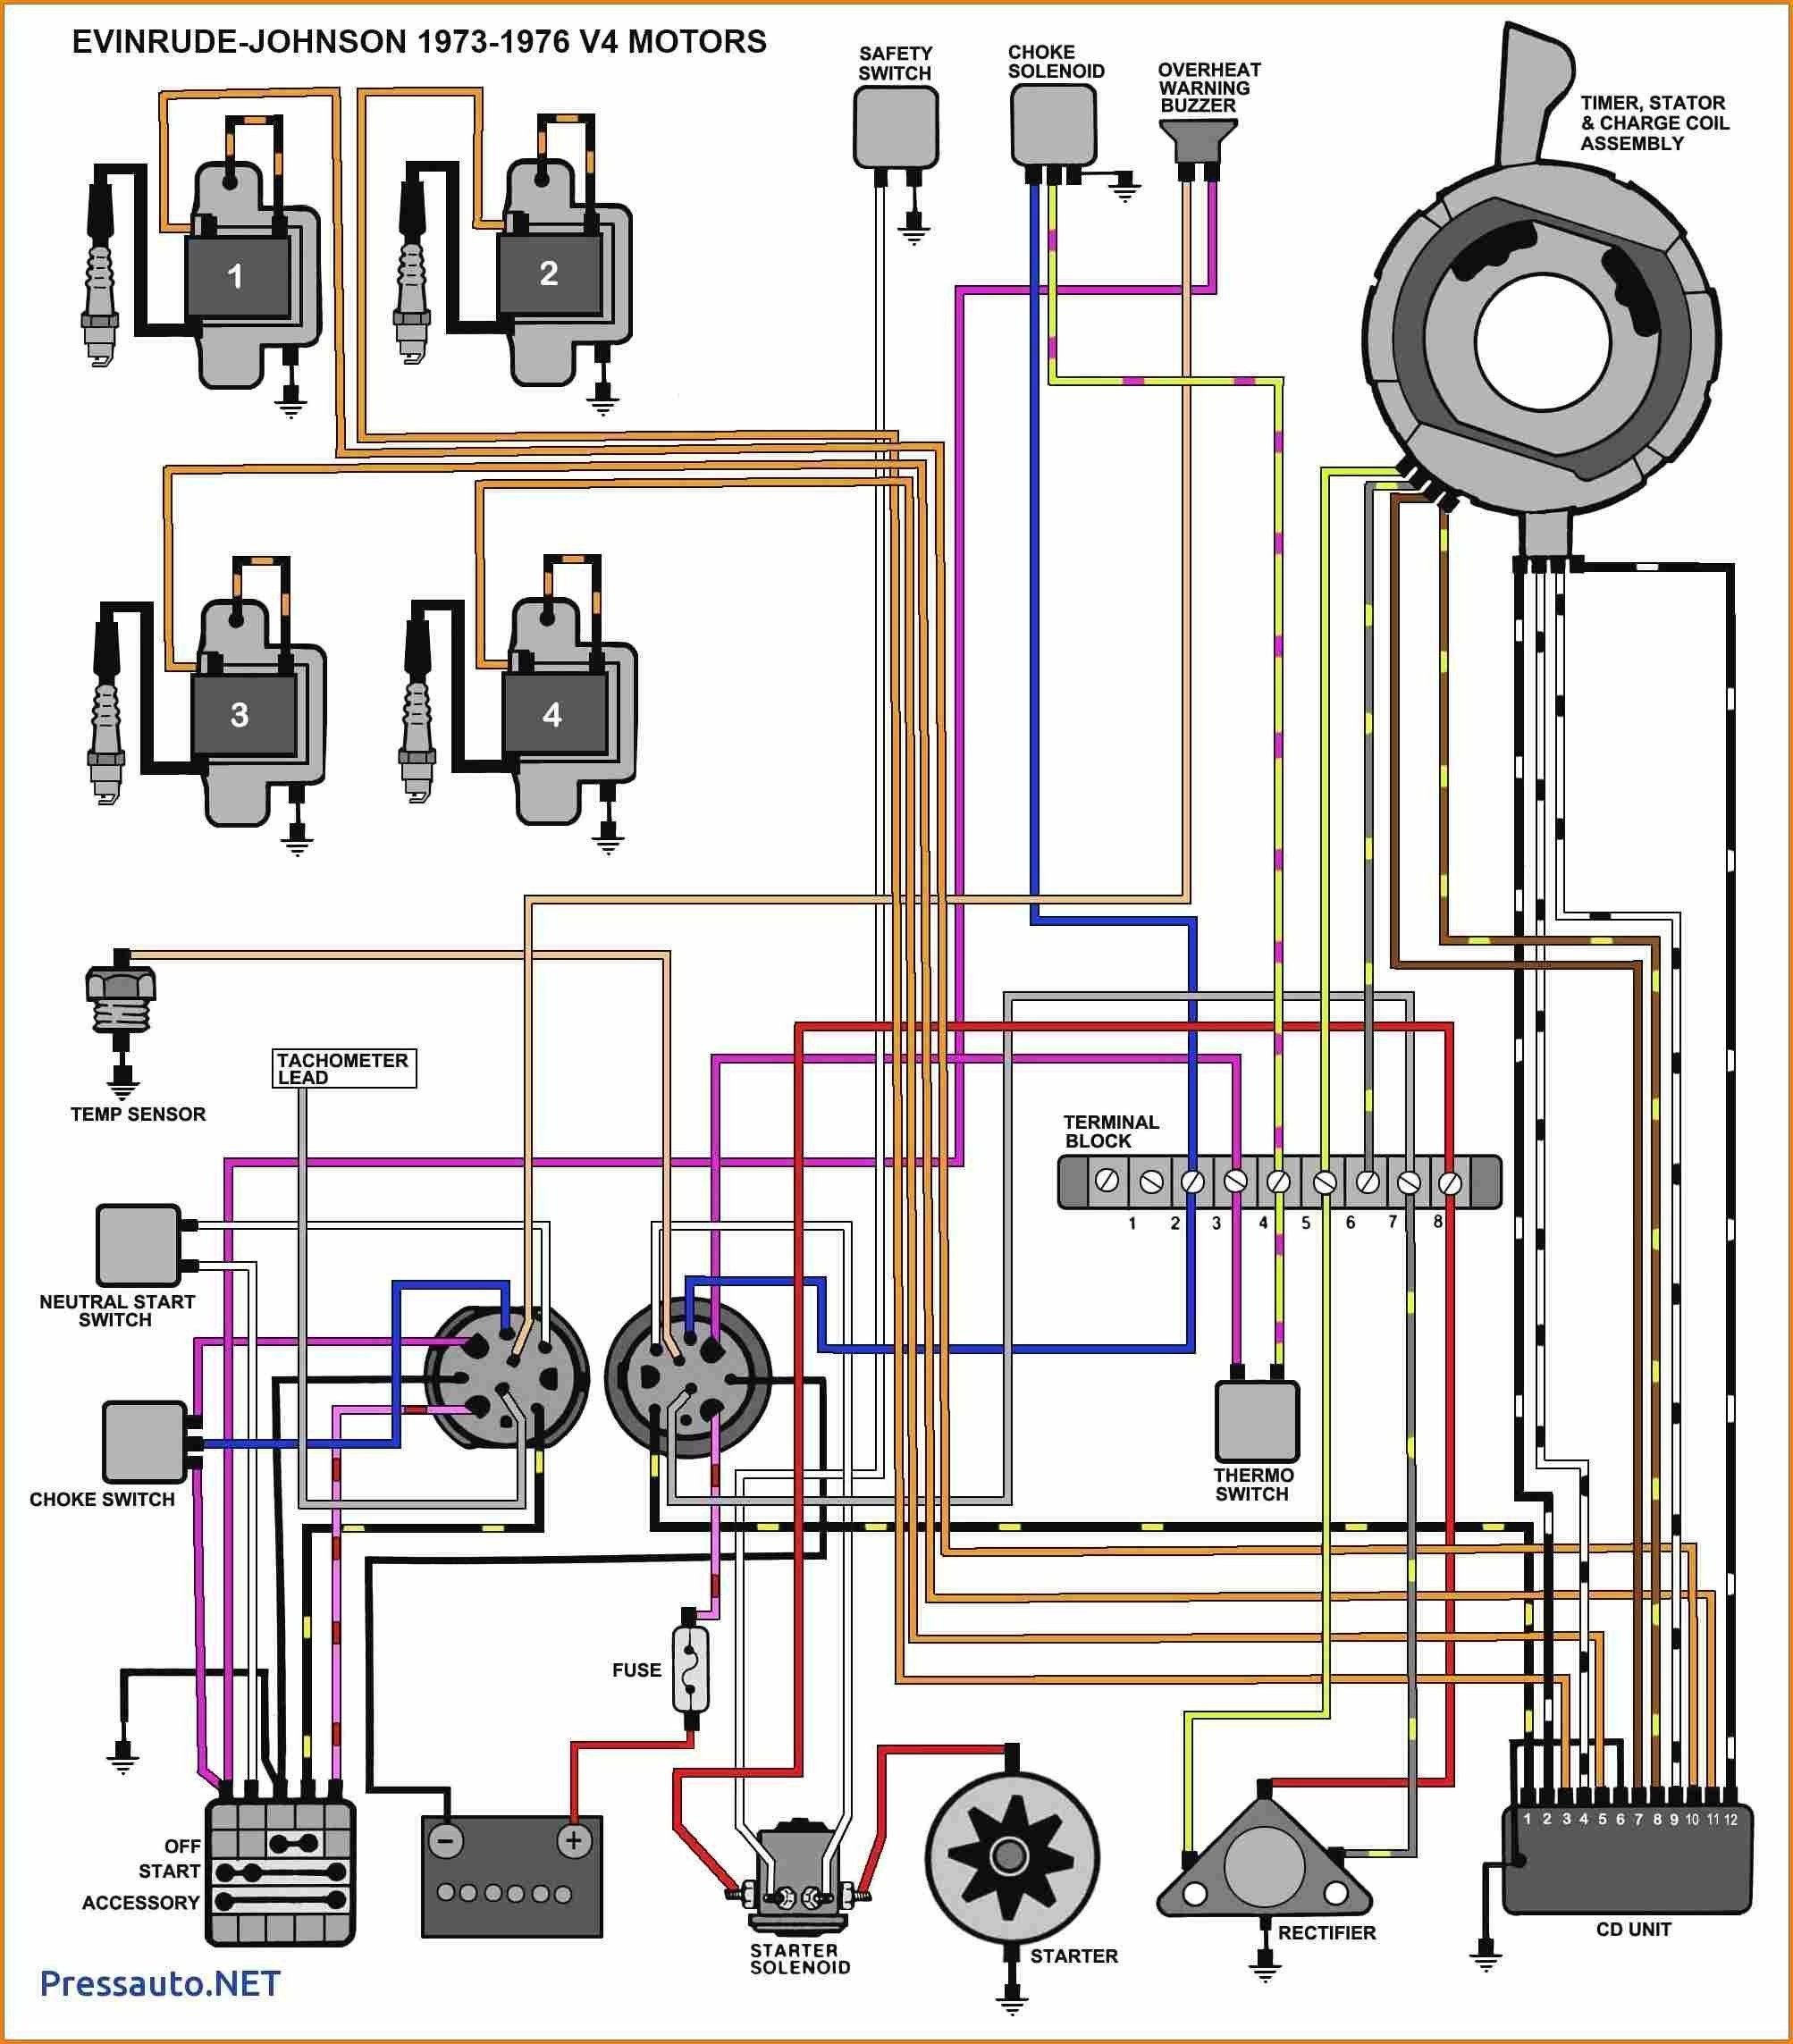 1972 Evinrude 100 Hp Wiring Diagram In Addition Single Phase Motor In 2020 Diagram Electronics Basics Outboard